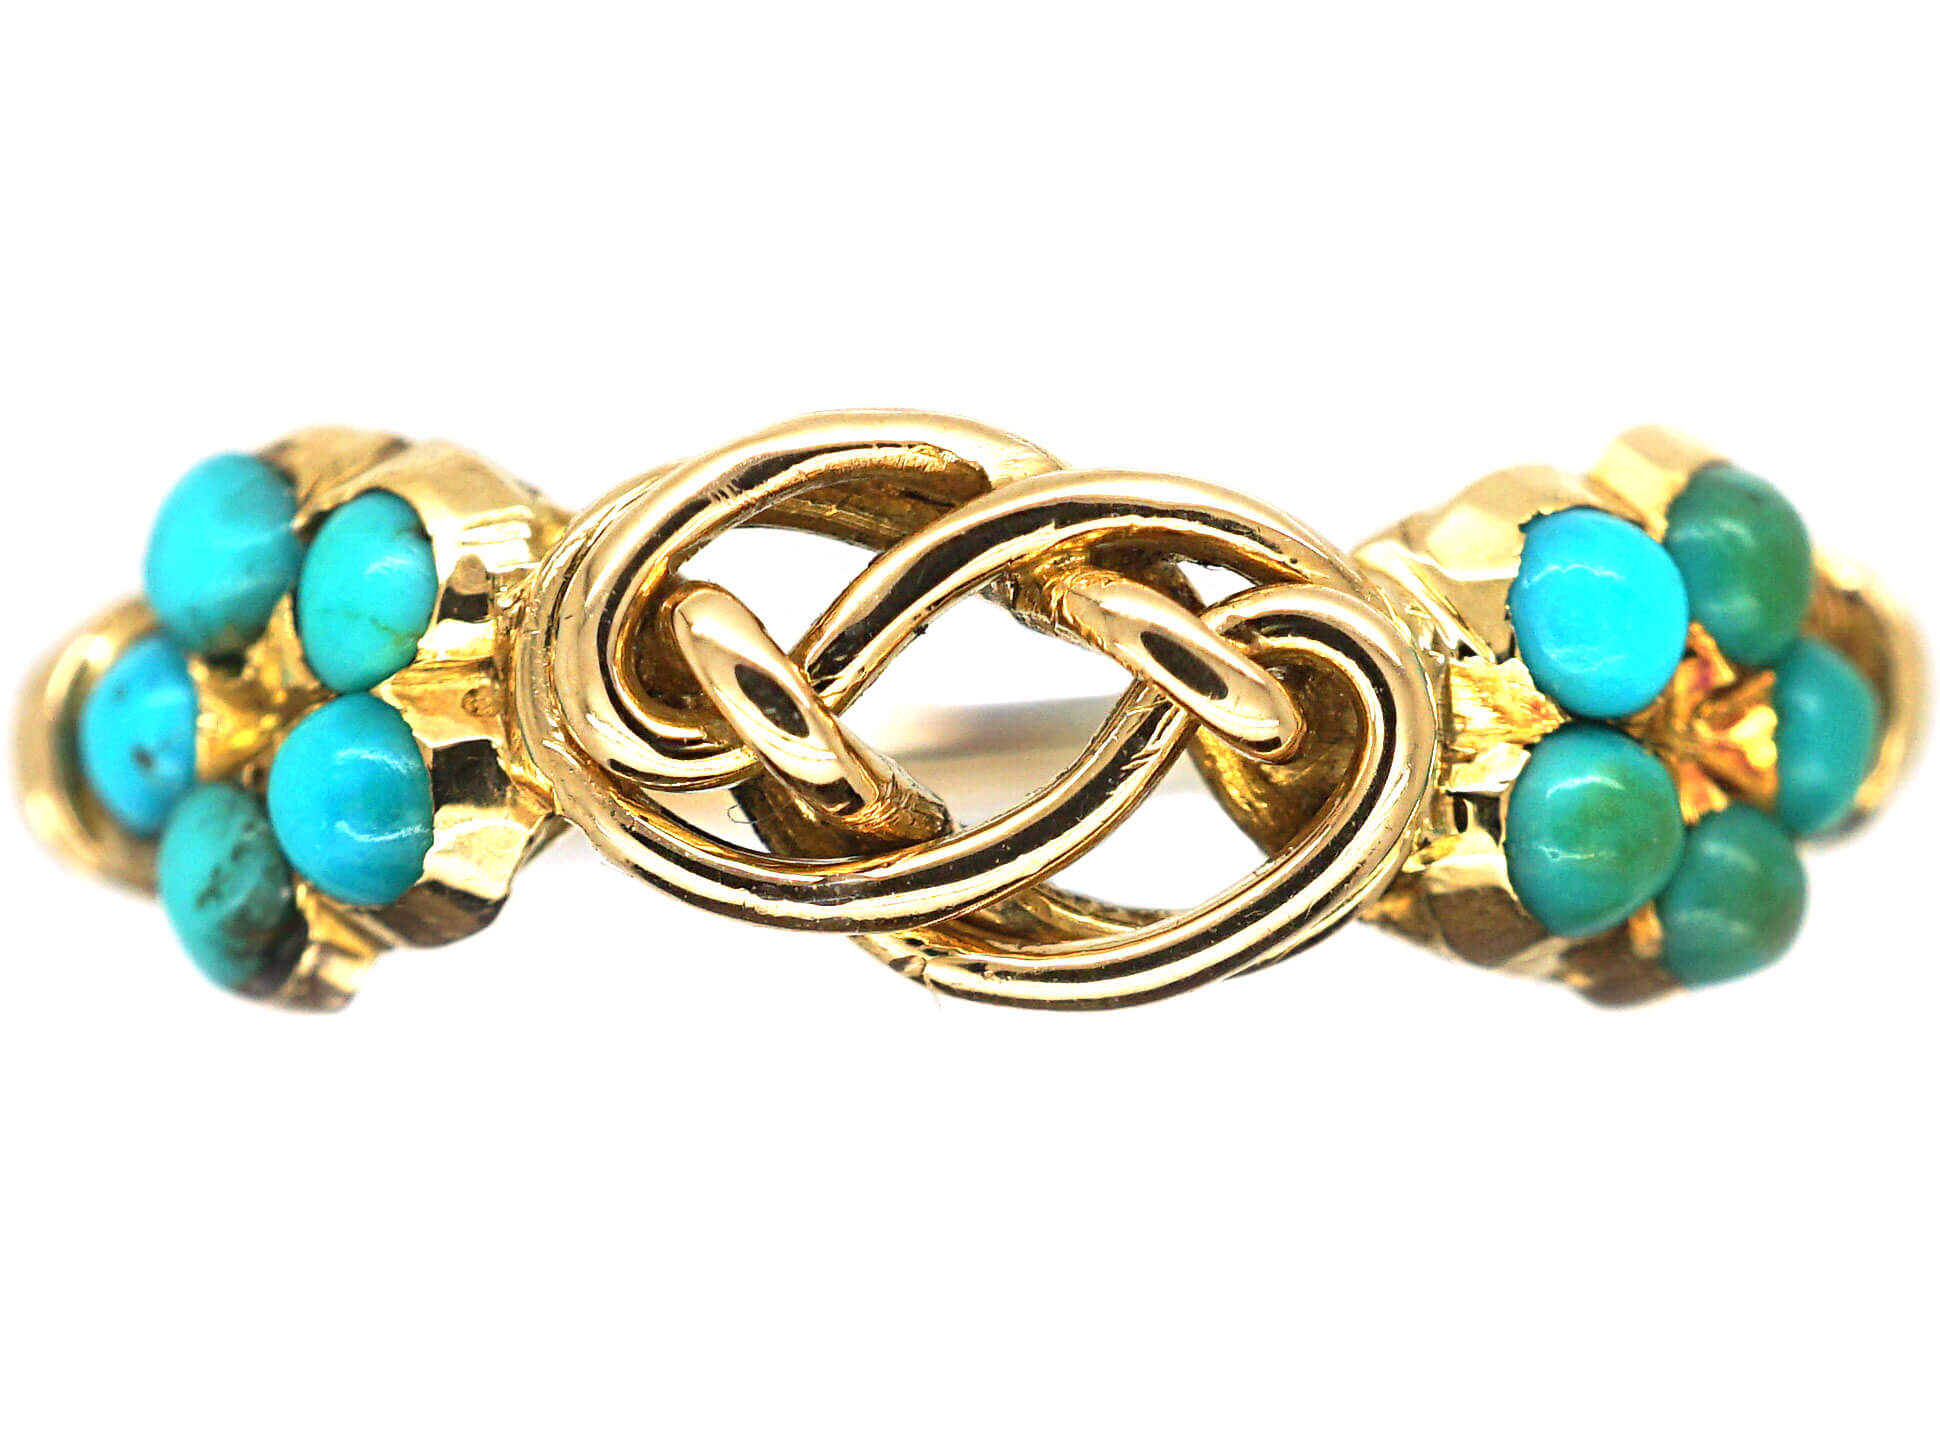 Late Georgian 15ct Gold Forget Me Not & Gold Knot Ring